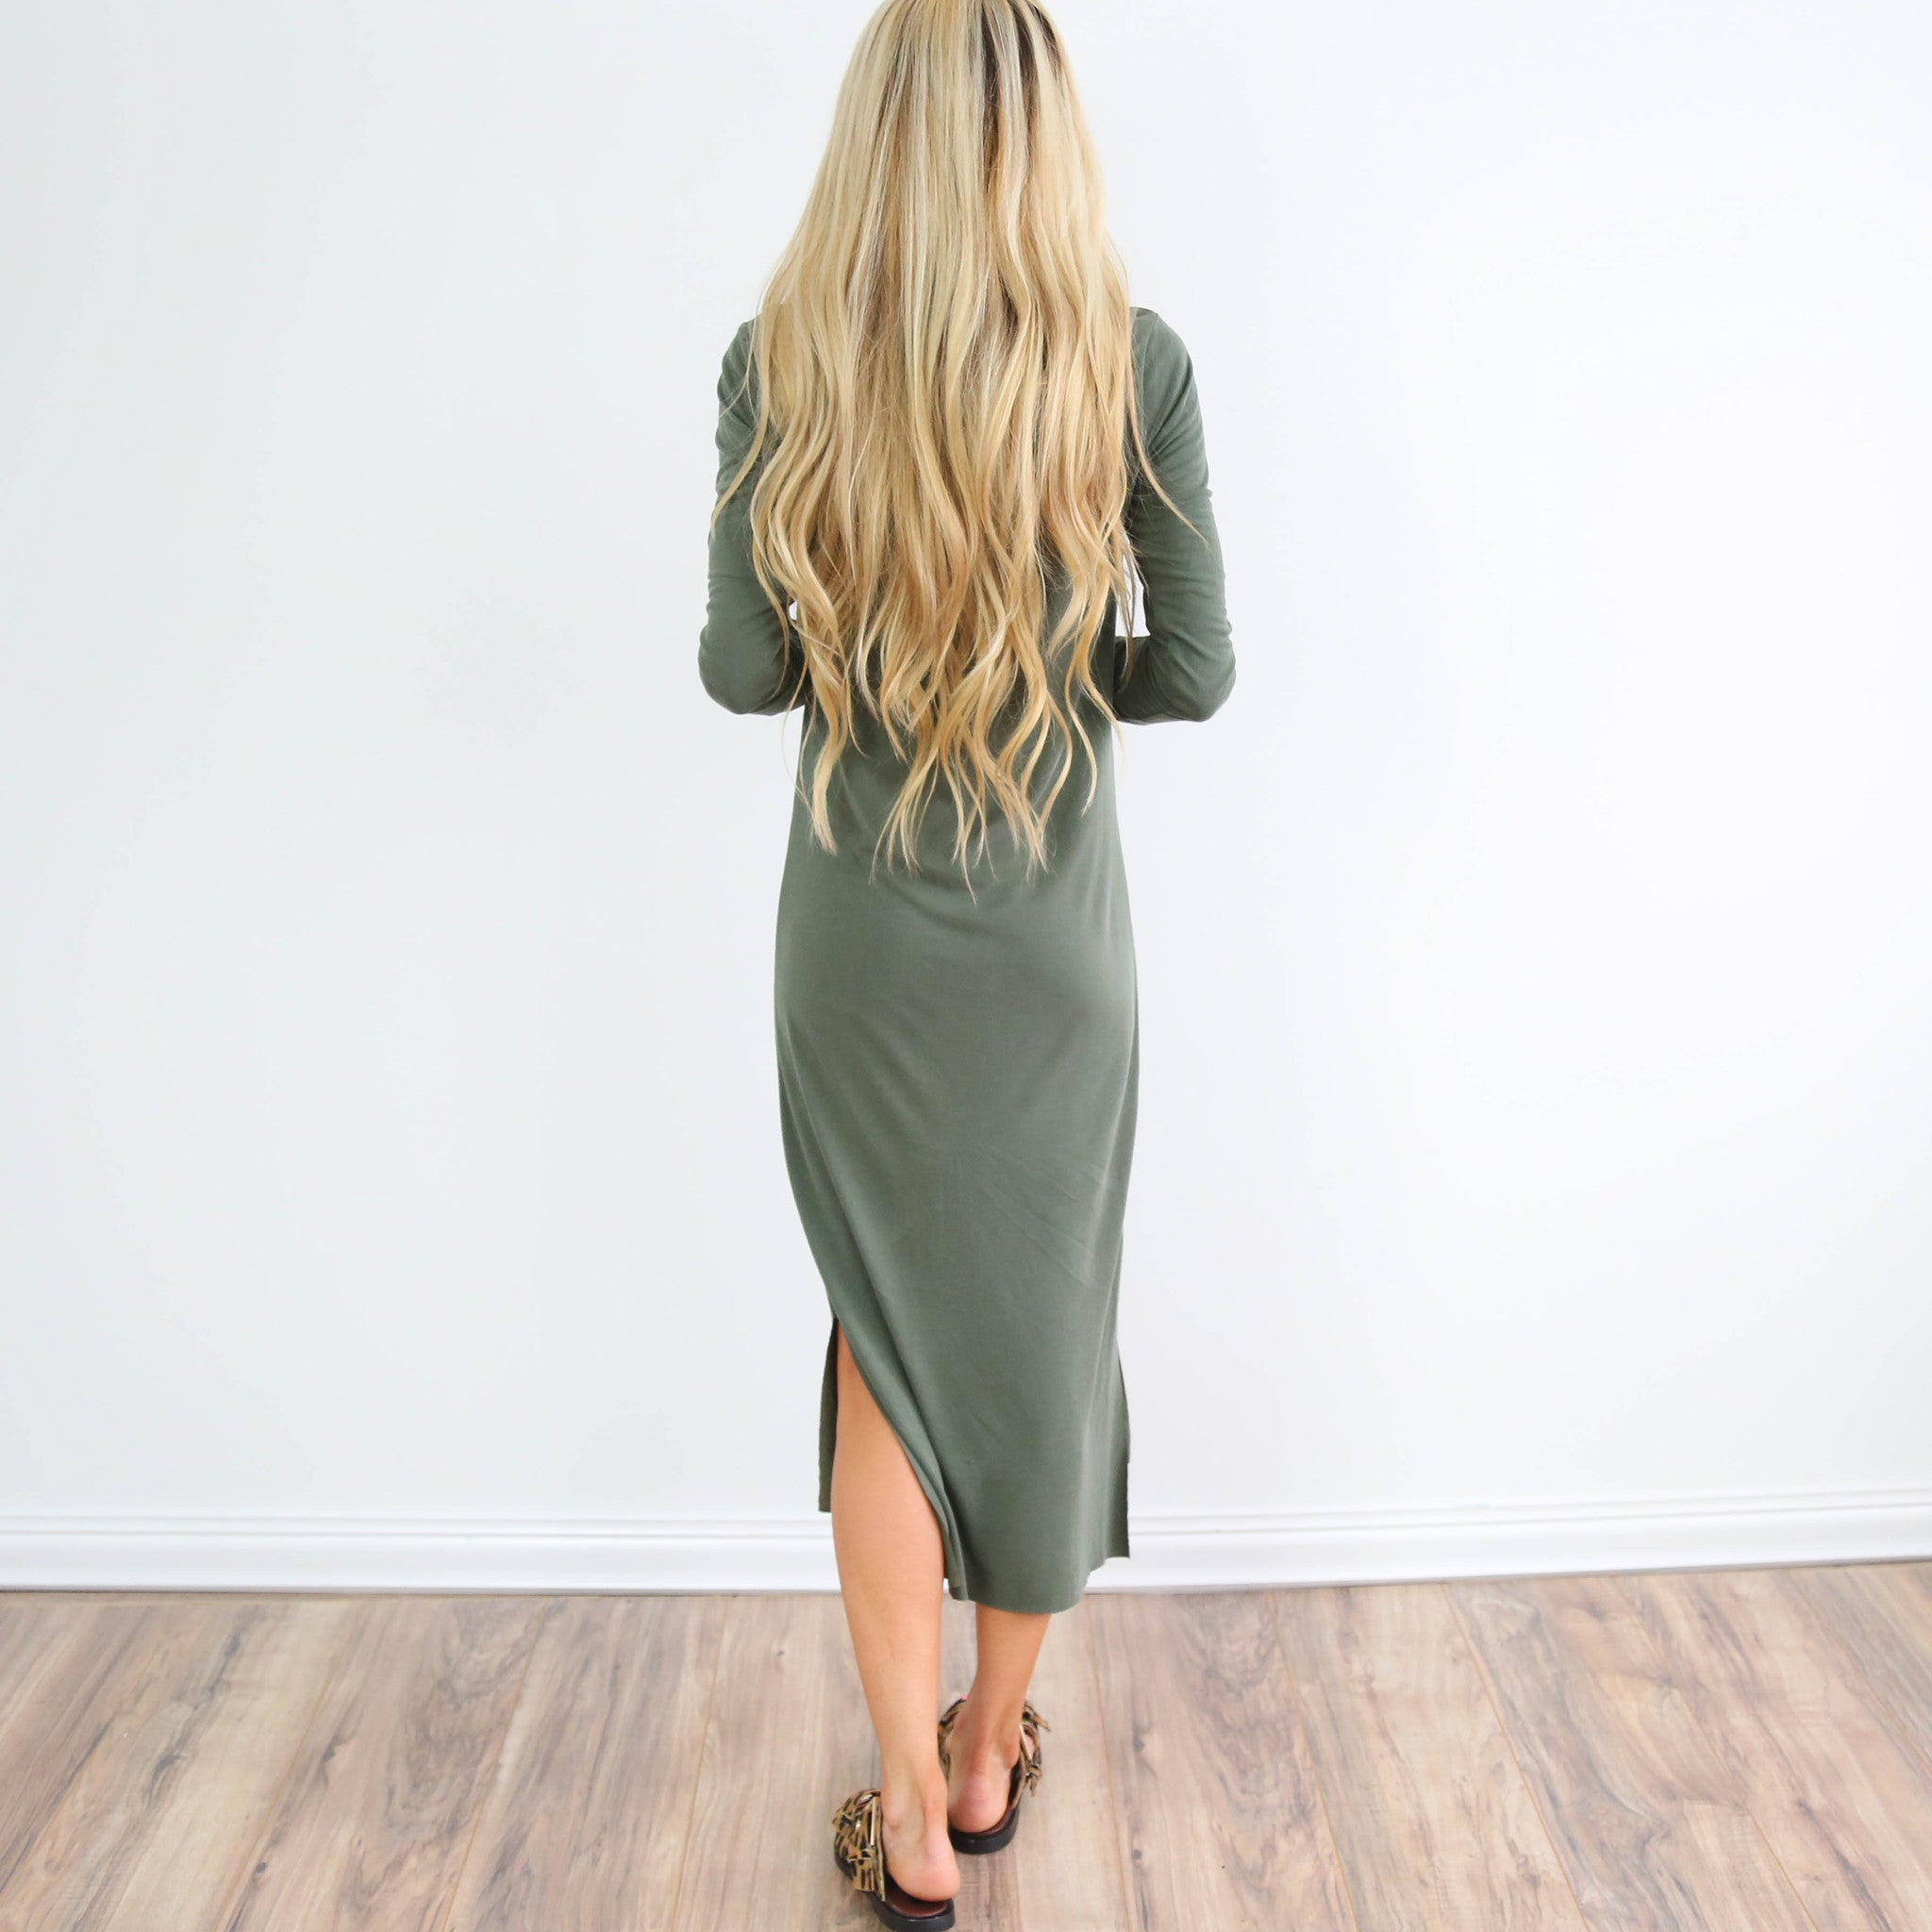 Simply Olive Dress